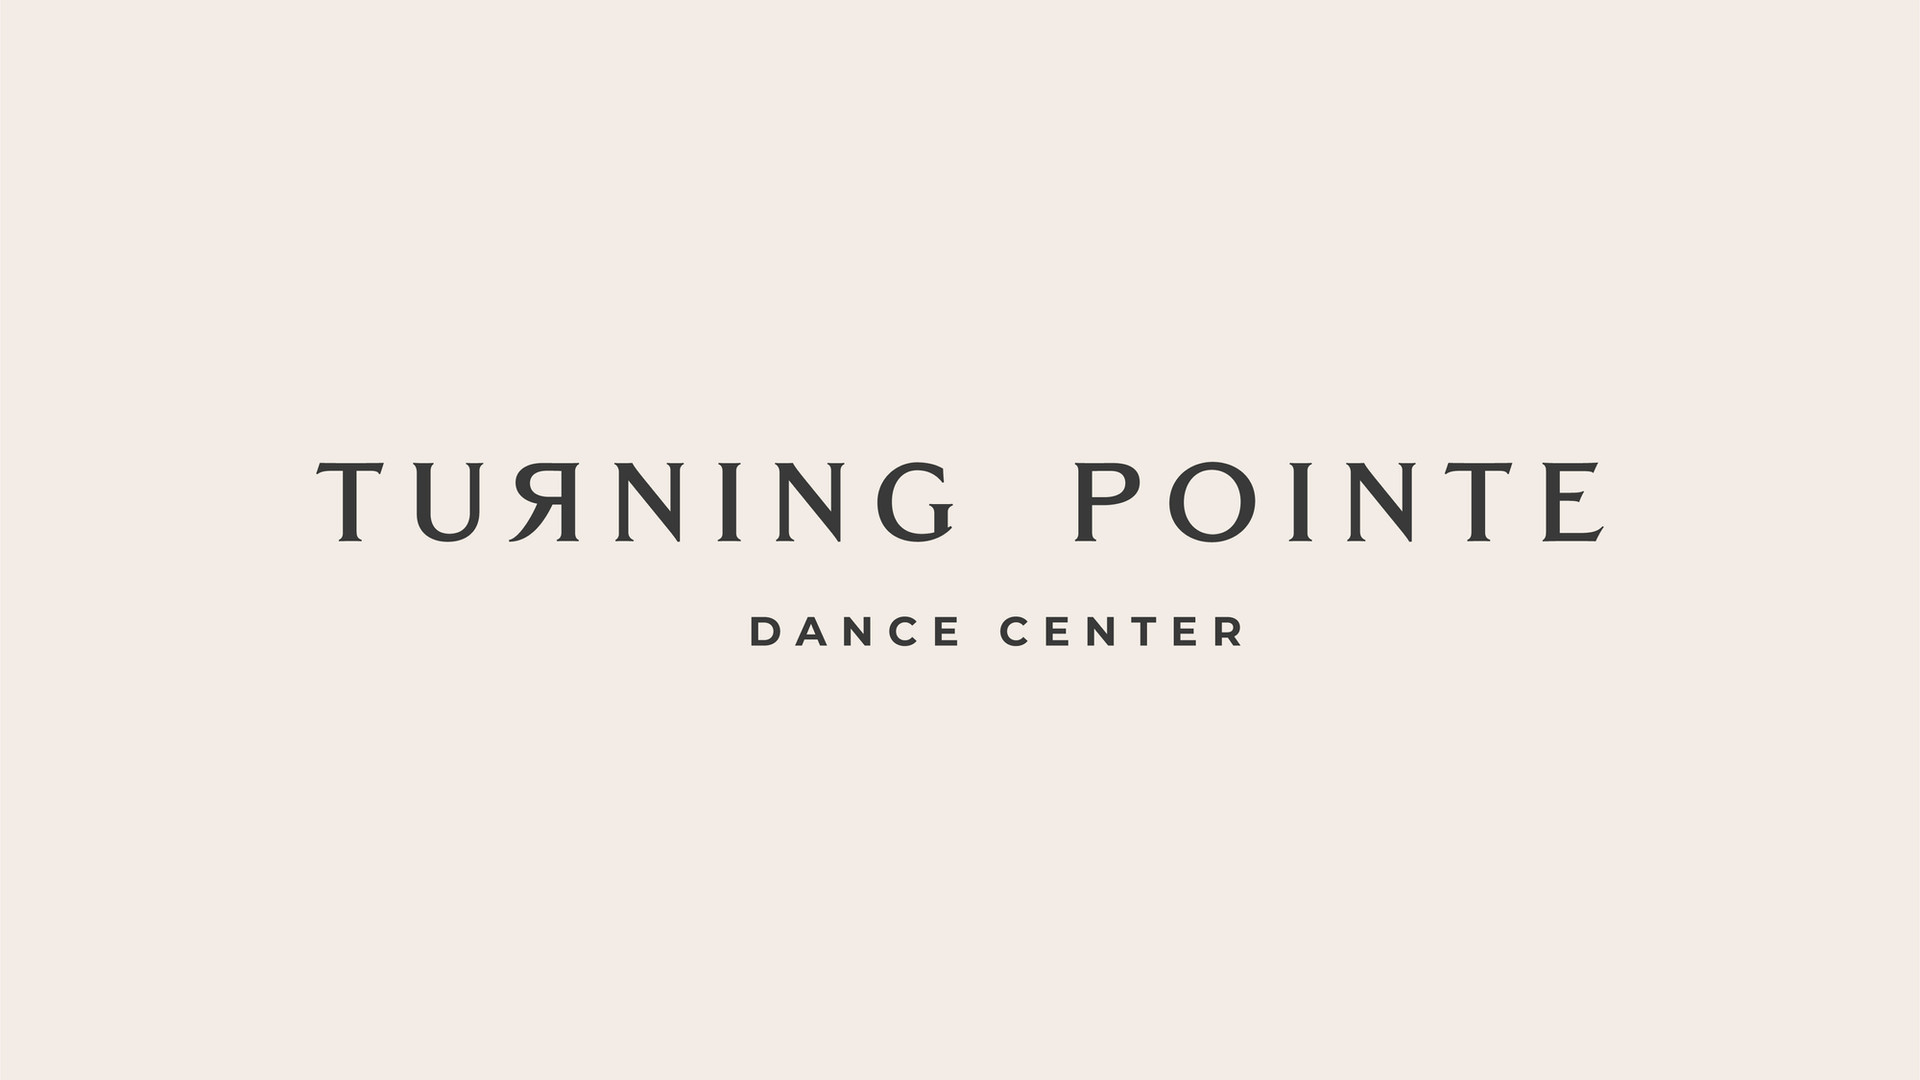 Turning pointe logo